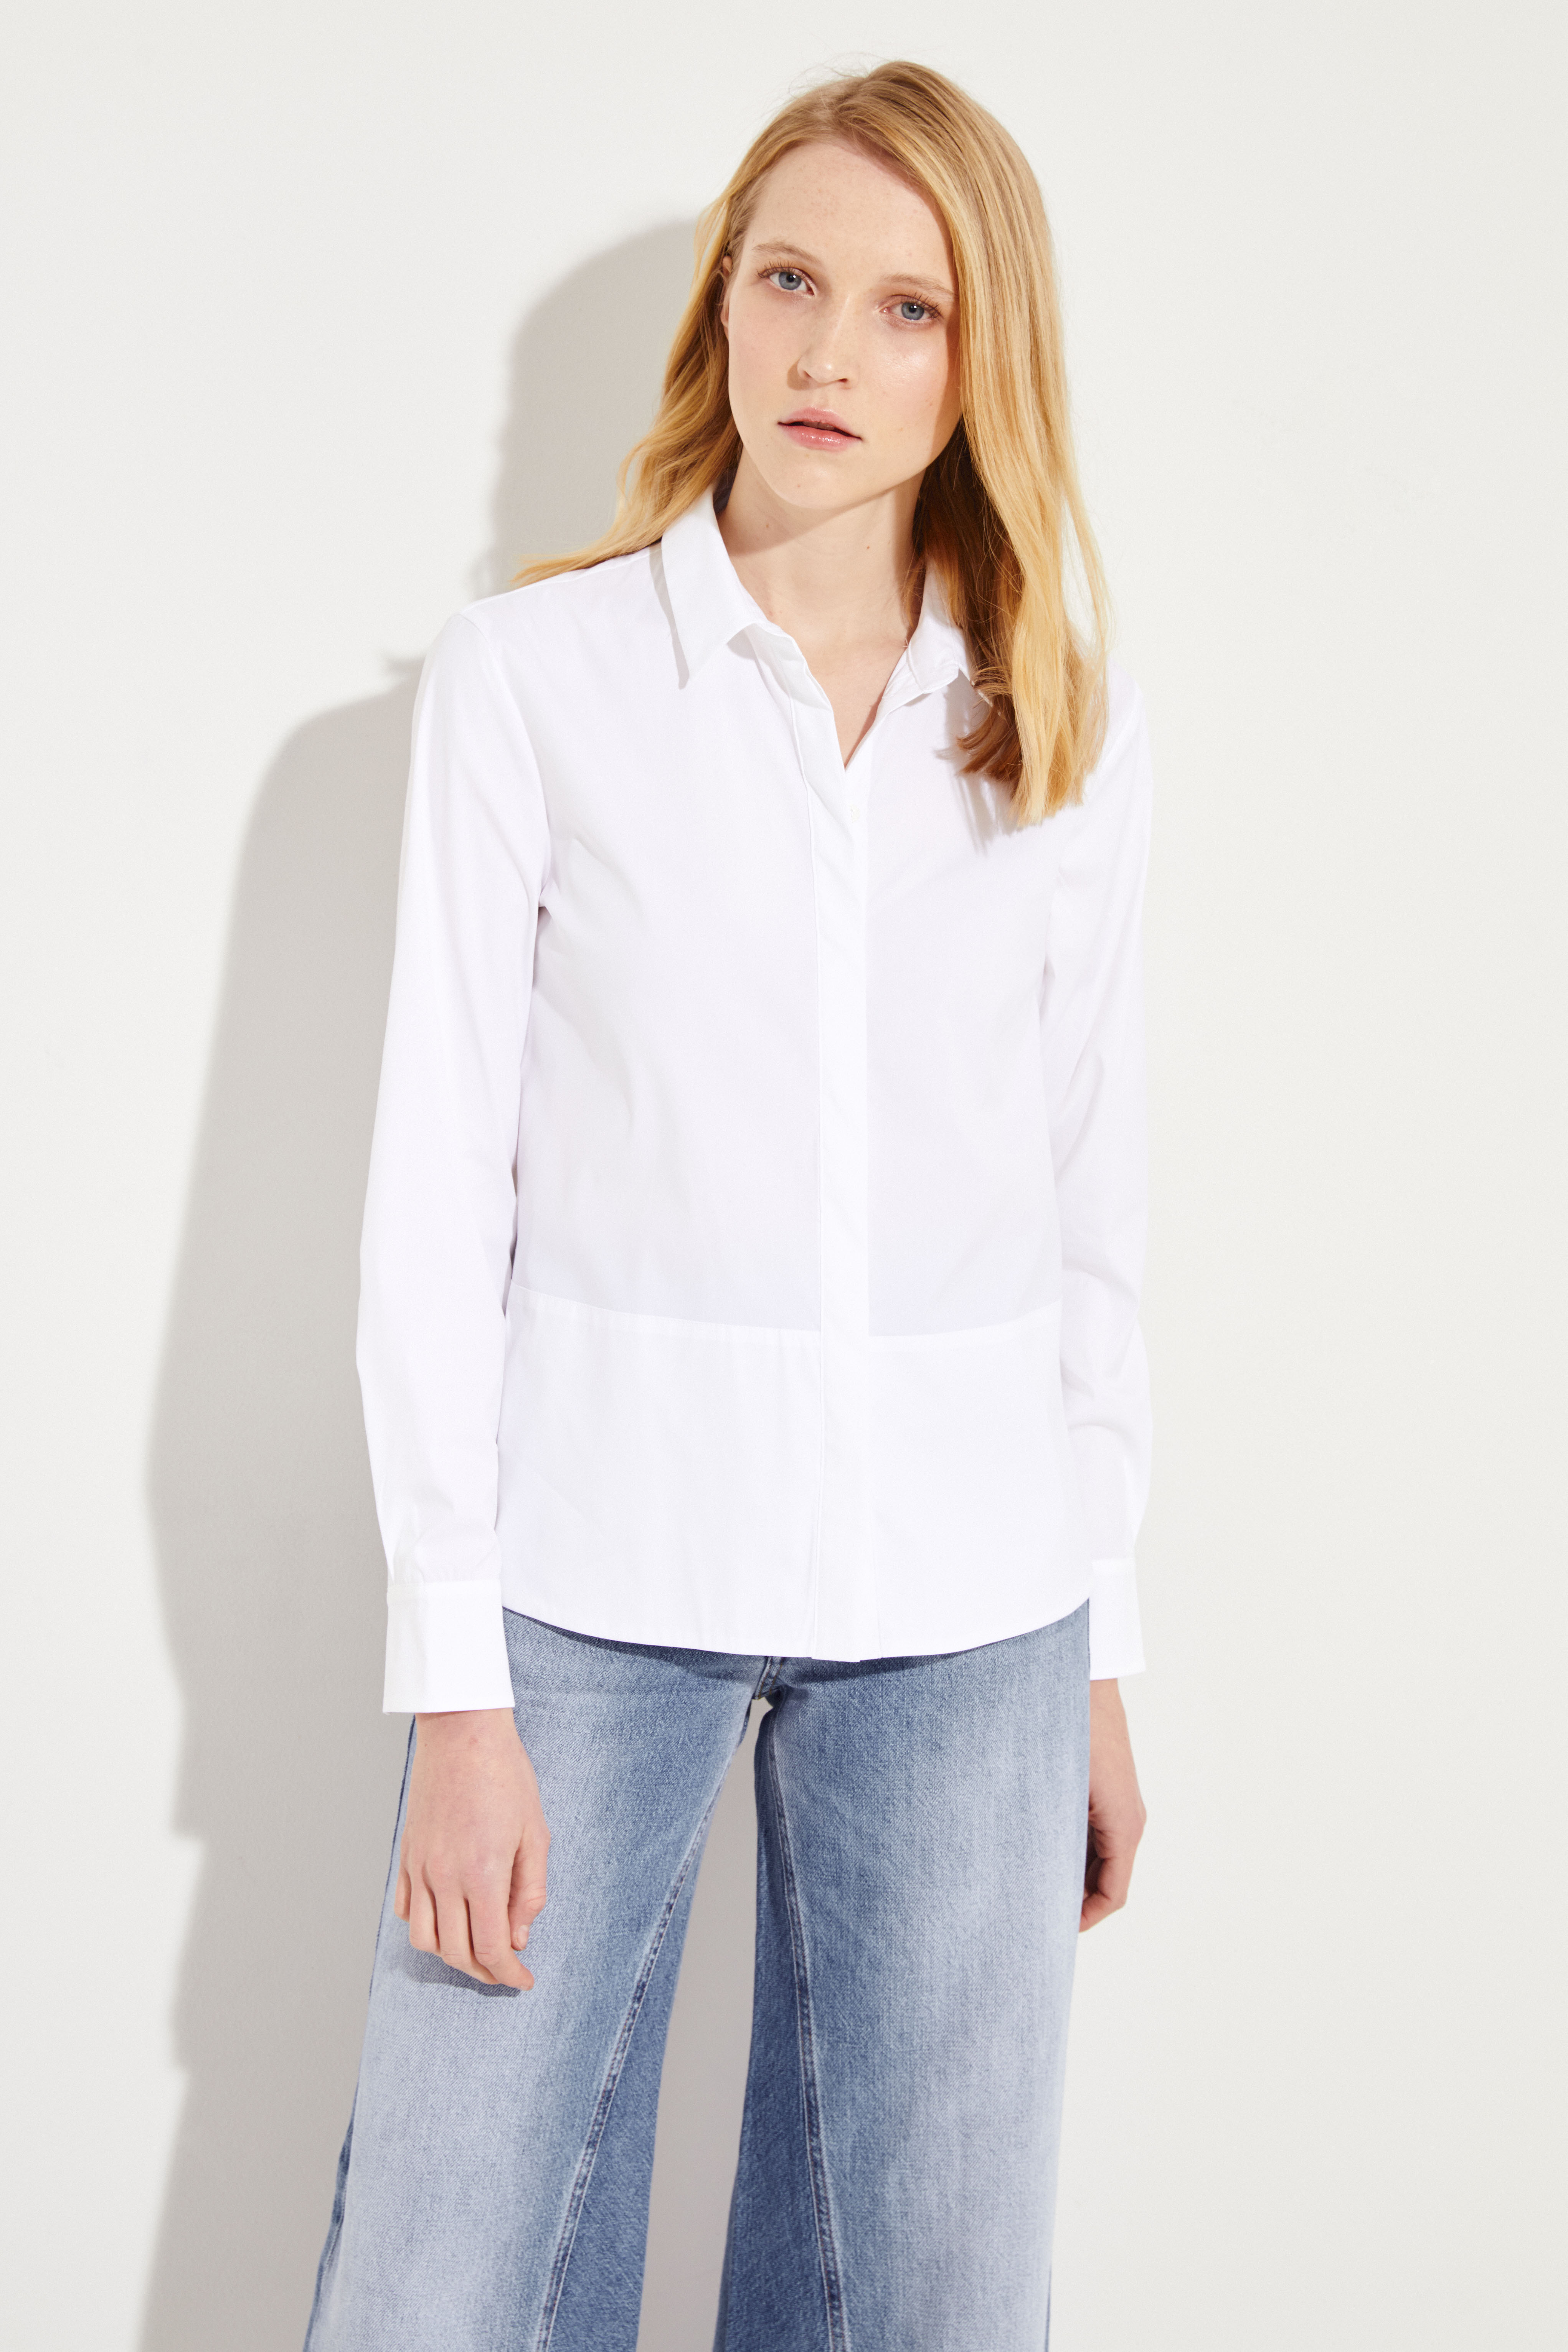 020f13efbf Classic Blouse White   Blouses and Shirts   Tops   Clothing    unger-fashion.com